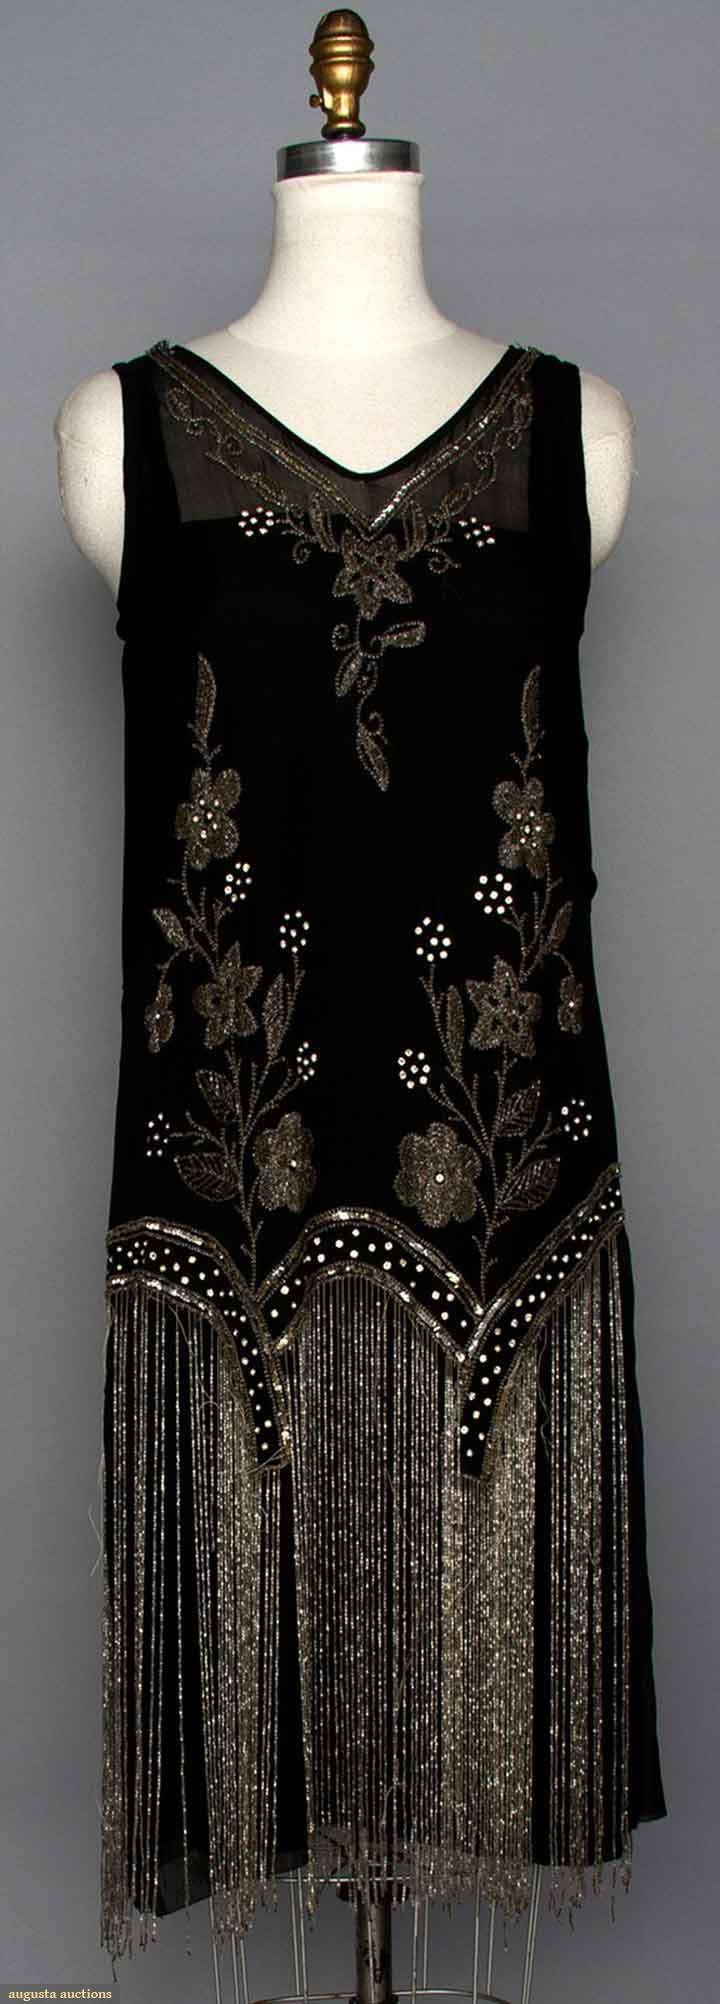 Beaded Flapper Dress, Augusta Auctions, MAY 13th & 14th, 2014, Lot 123